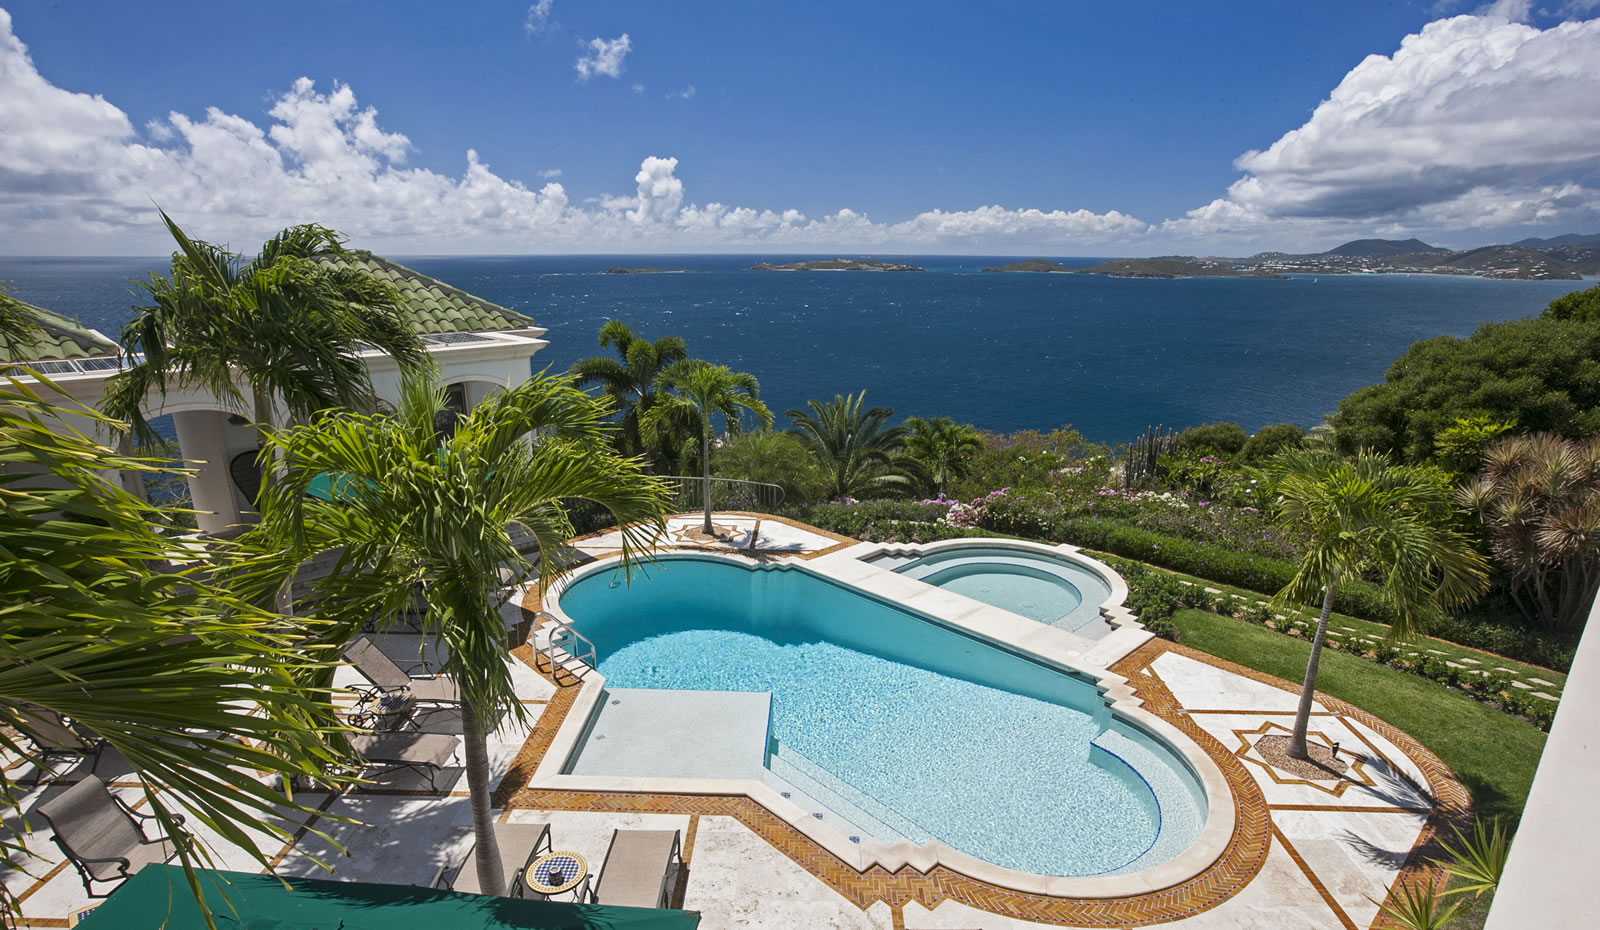 Us virgin island buisiness for sale with